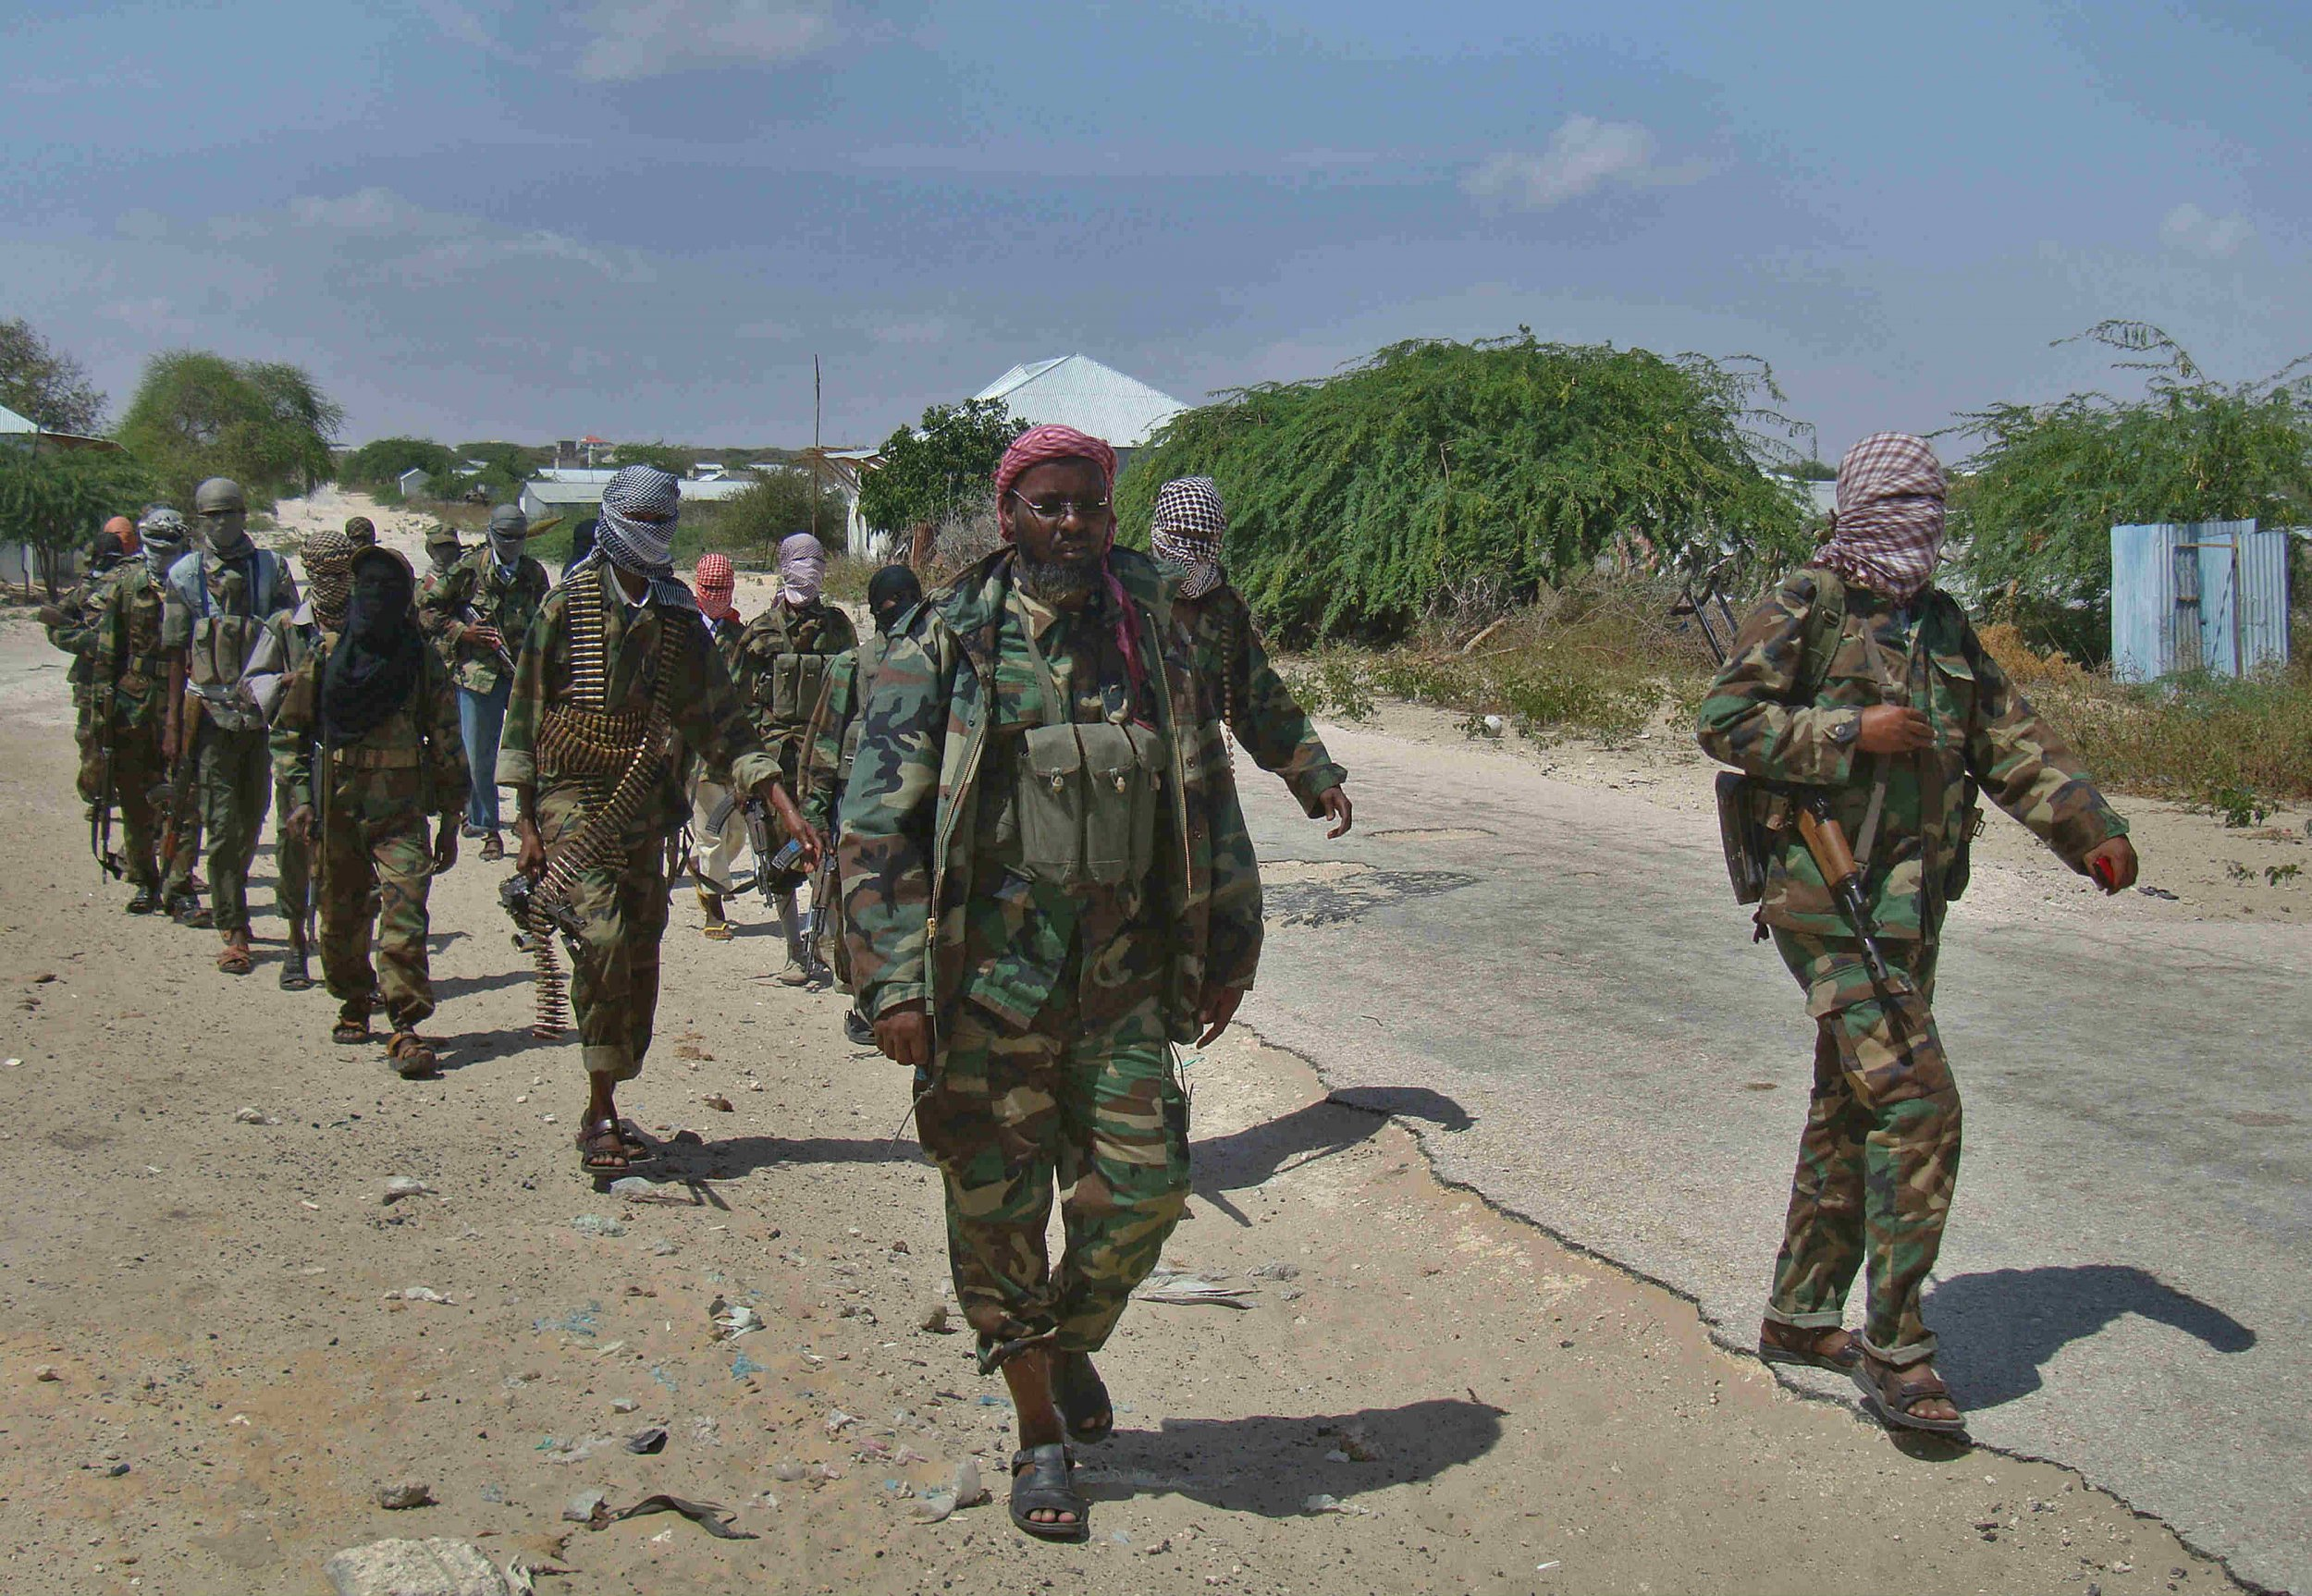 child soldiers in somalia A report from somalia's capital mogadishu describes how children, as young as 9, are carrying assault rifles and operating checkpoints for somalia's transitional federal government.